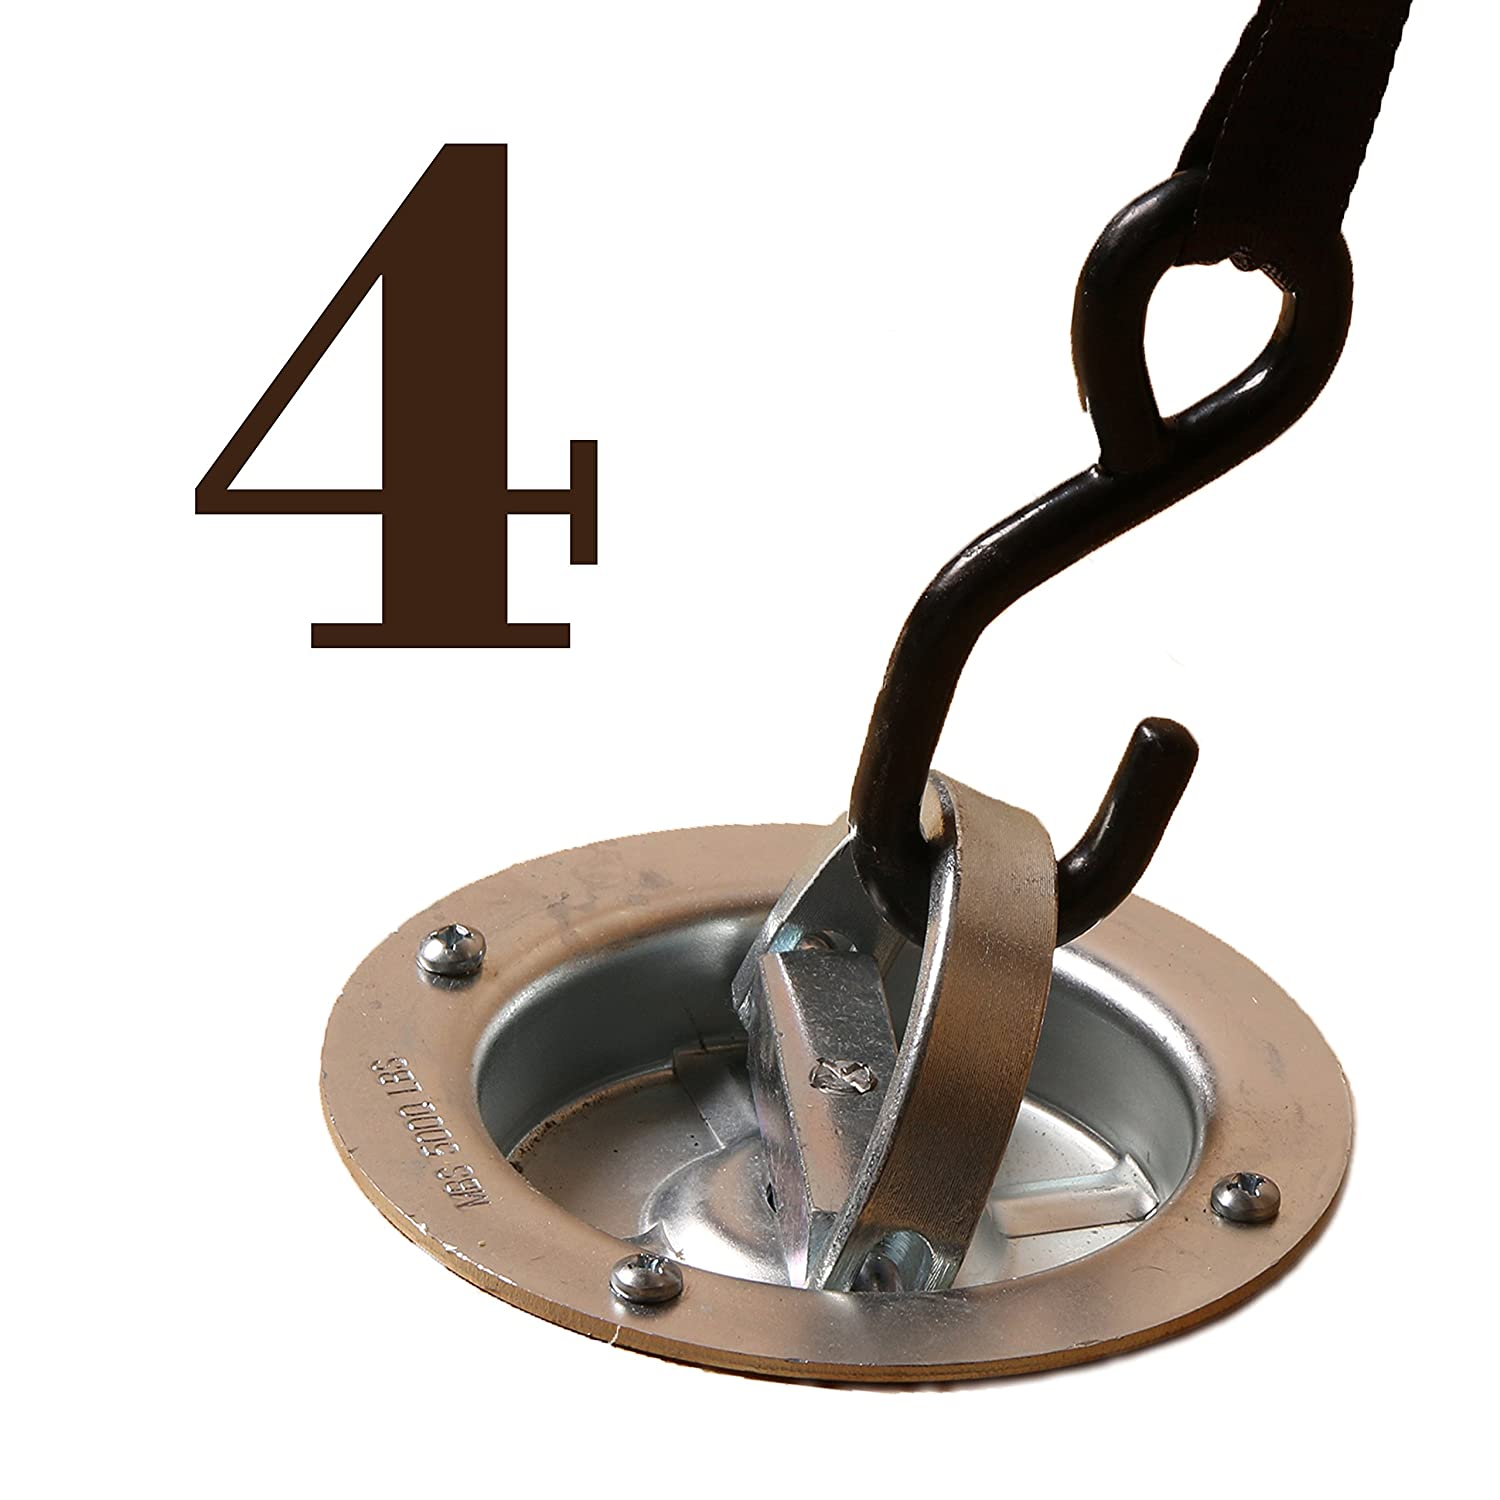 Swivels 360 Degrees Trailers Extra Large Rotating Recessed Pan Fitting with D-Ring WLL 1,666 Pounds Flatbeds Round Tiedown D-Ring to Secure Cargo in Semis 4 Heavy Duty D-Ring Tie-Down Anchor